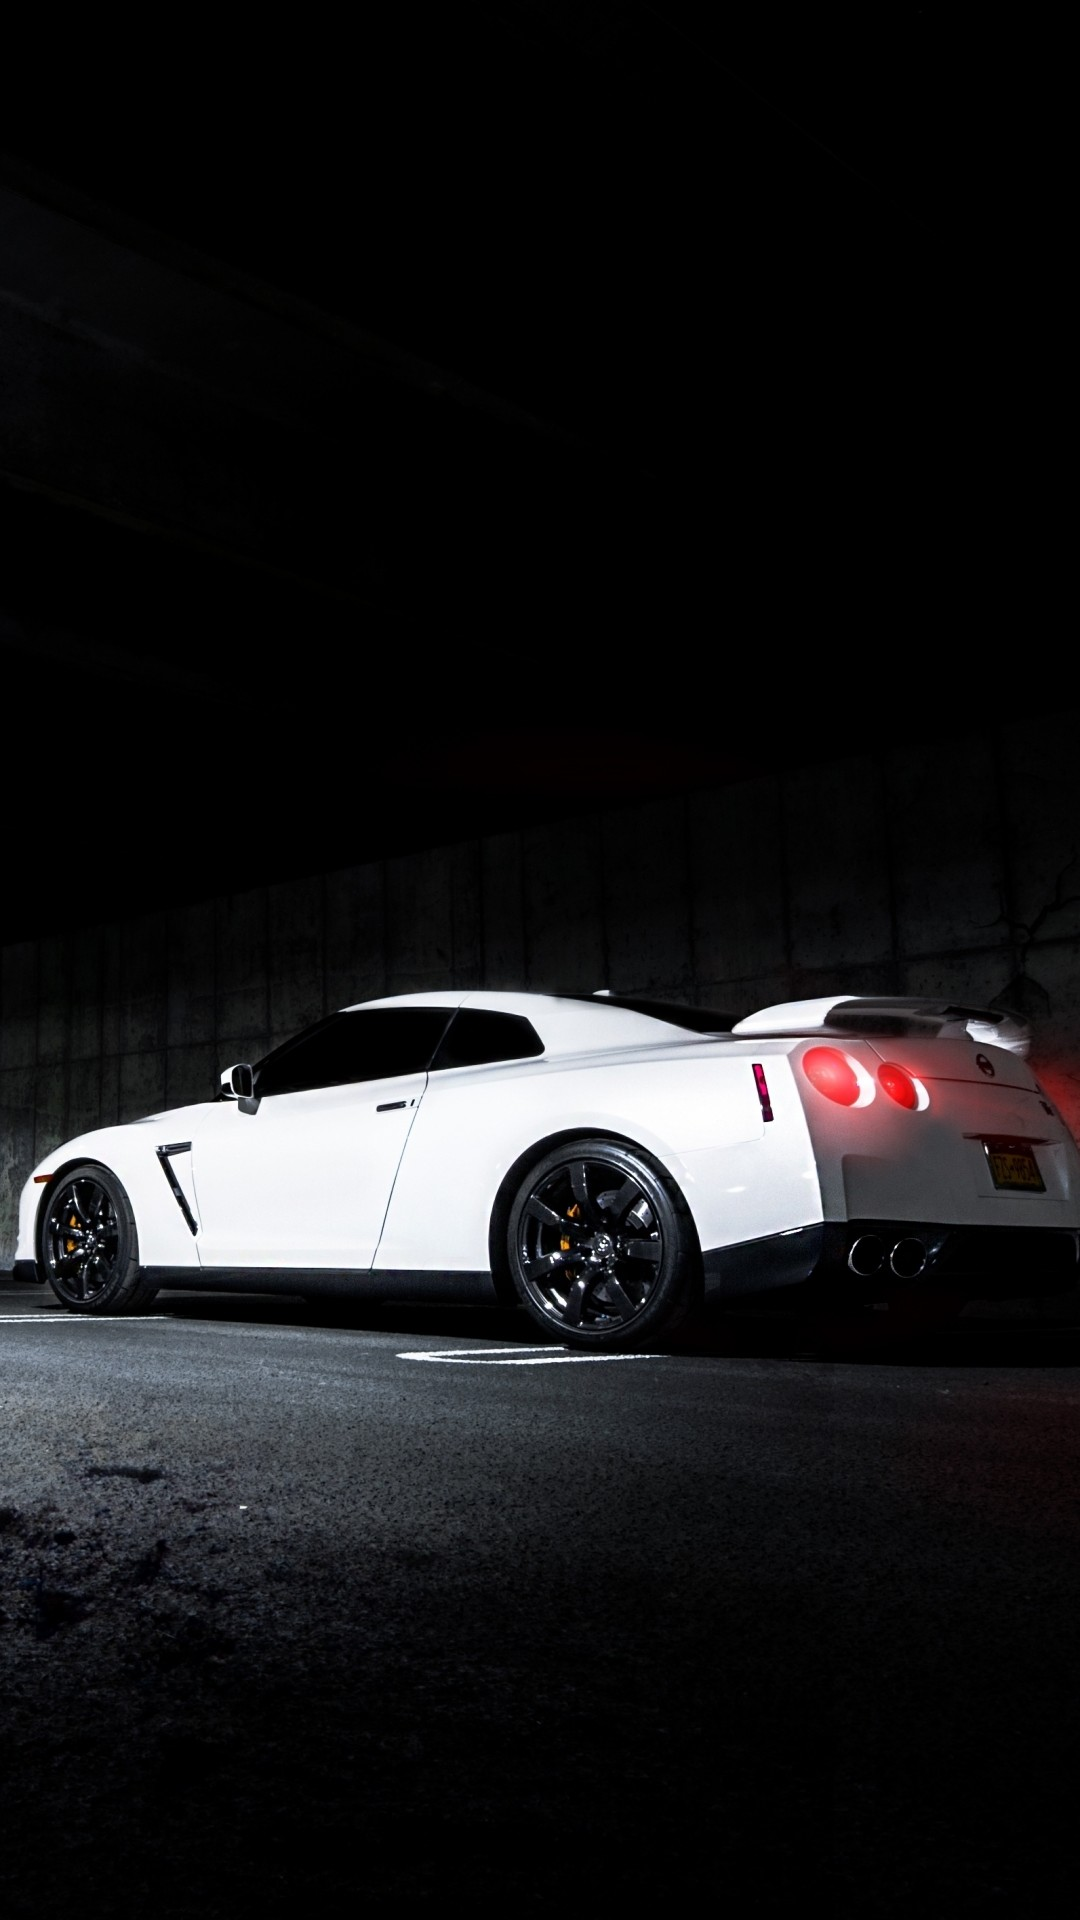 Nissan GT R 7 wallpapers (74 Wallpapers)